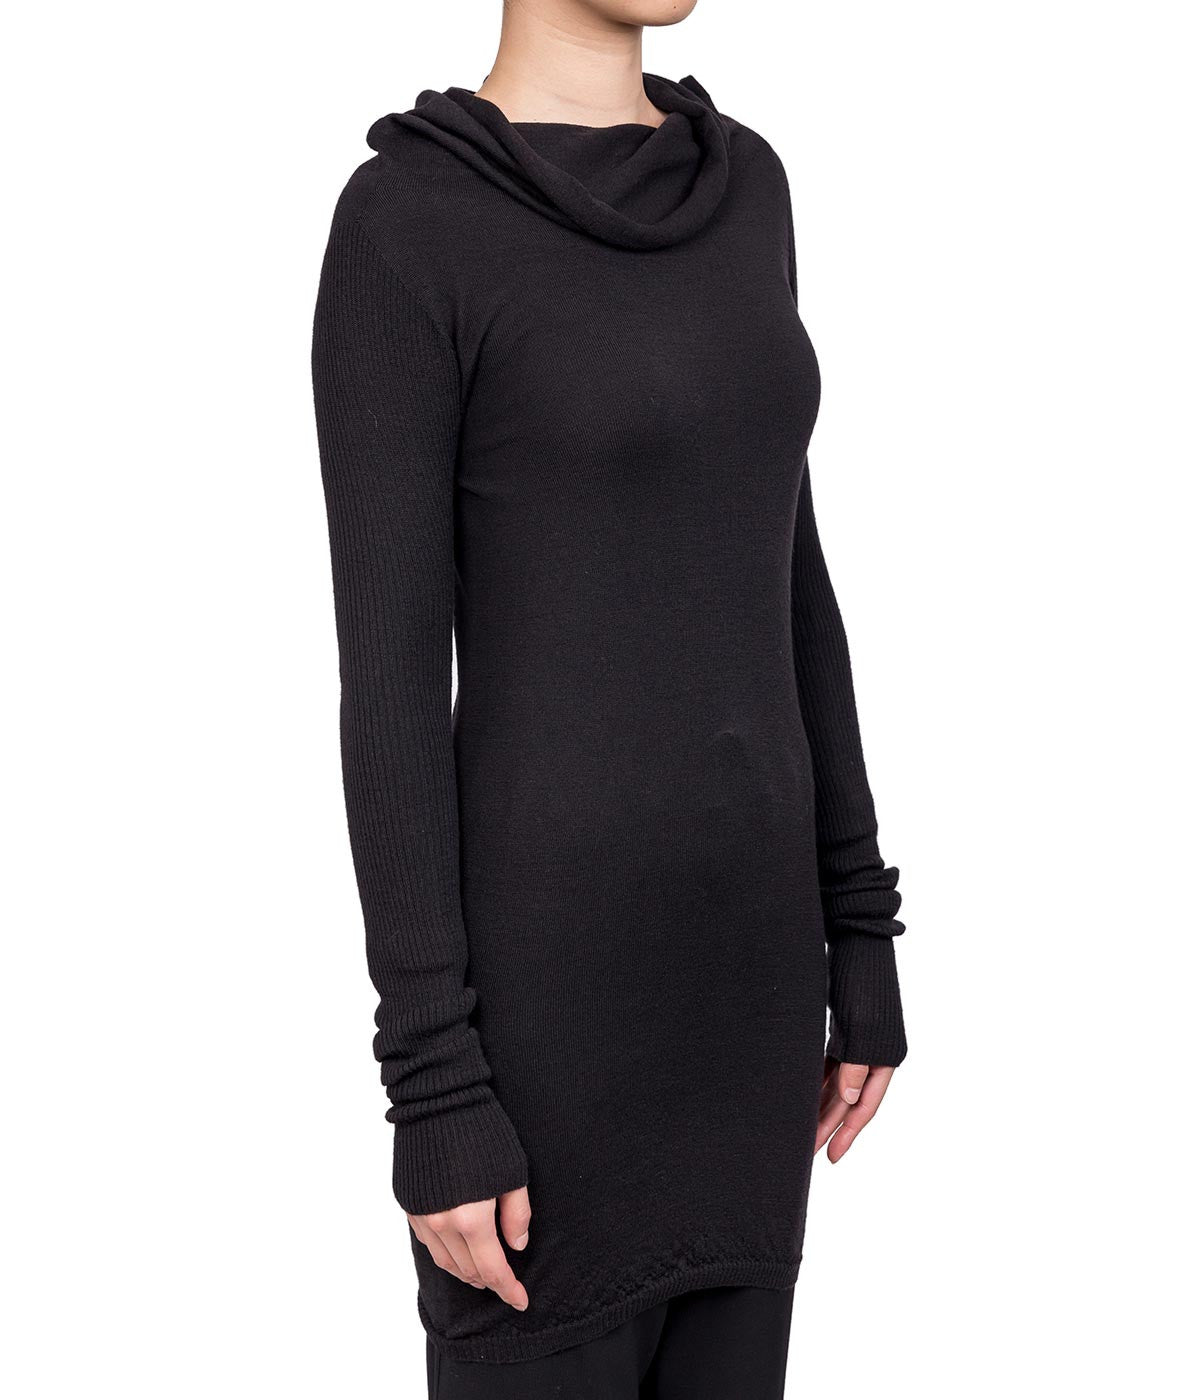 Black Draped Neckline Lightweight Sweater